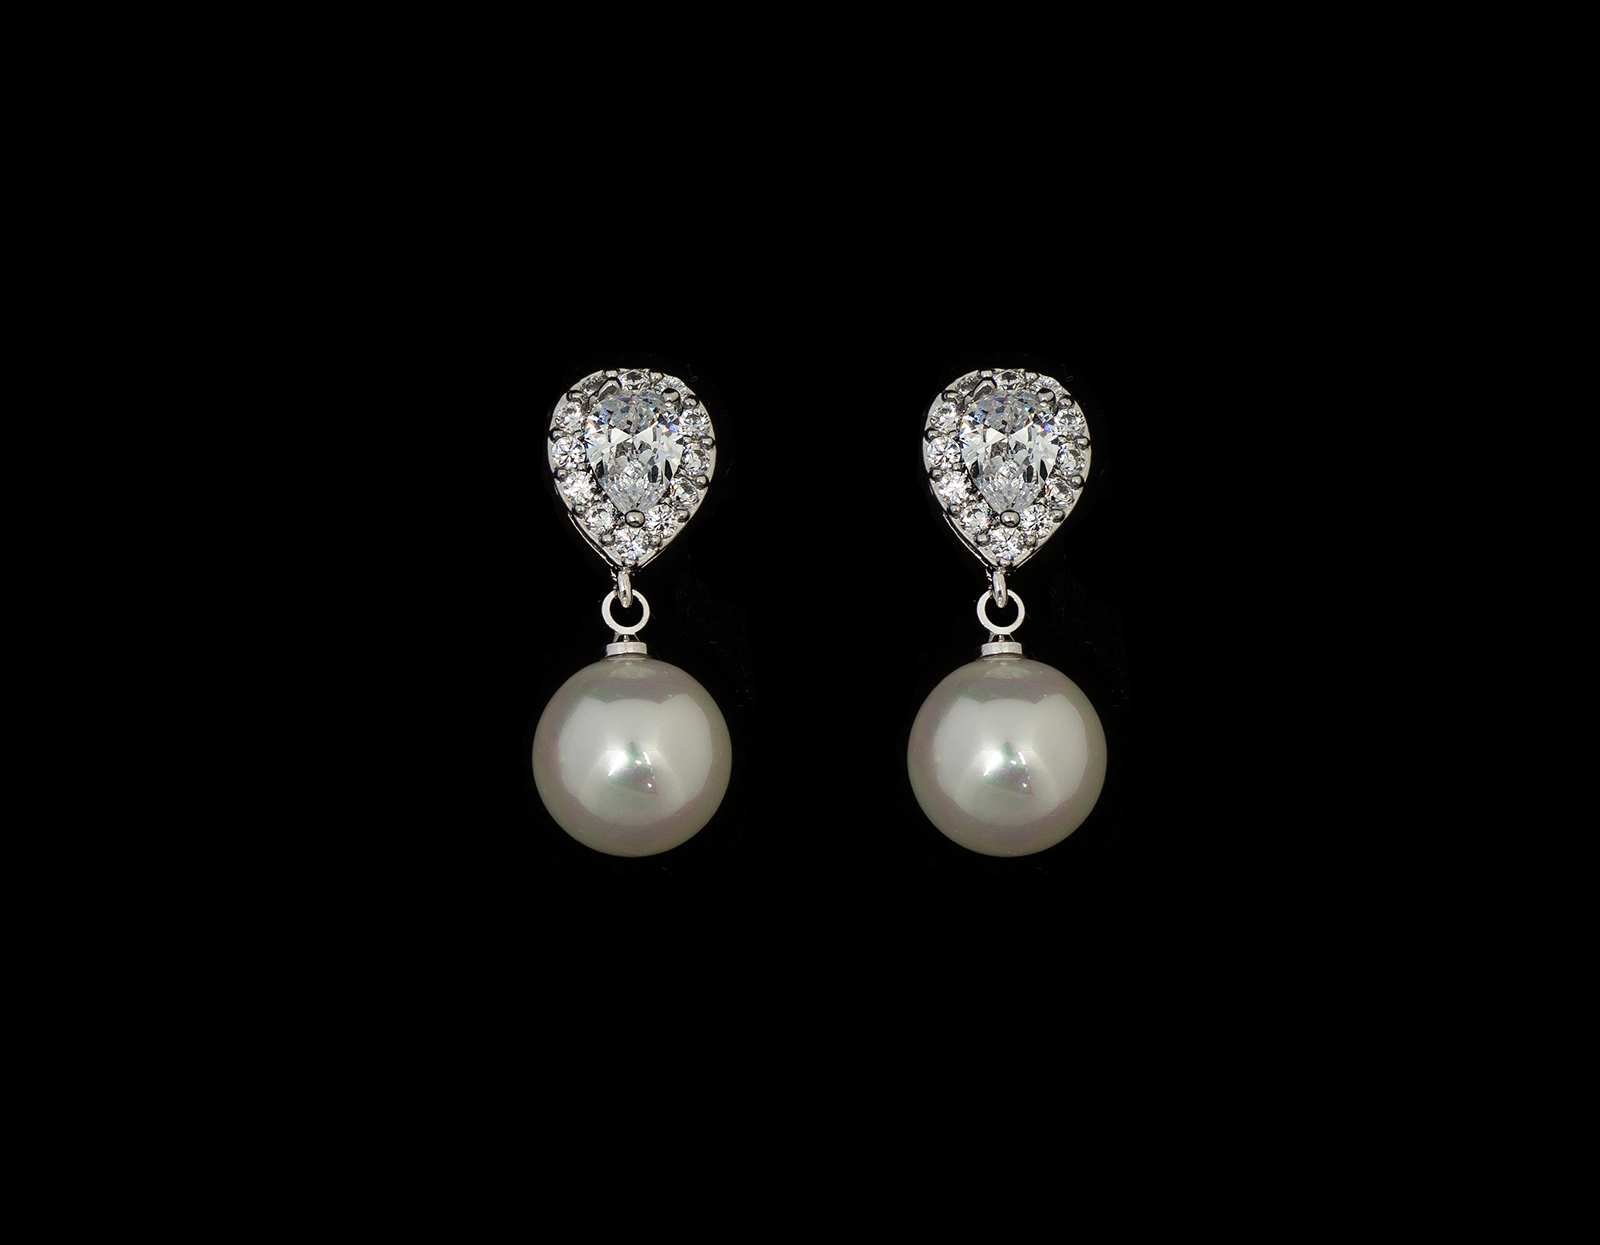 Bridal Classics Earrings CZ-844